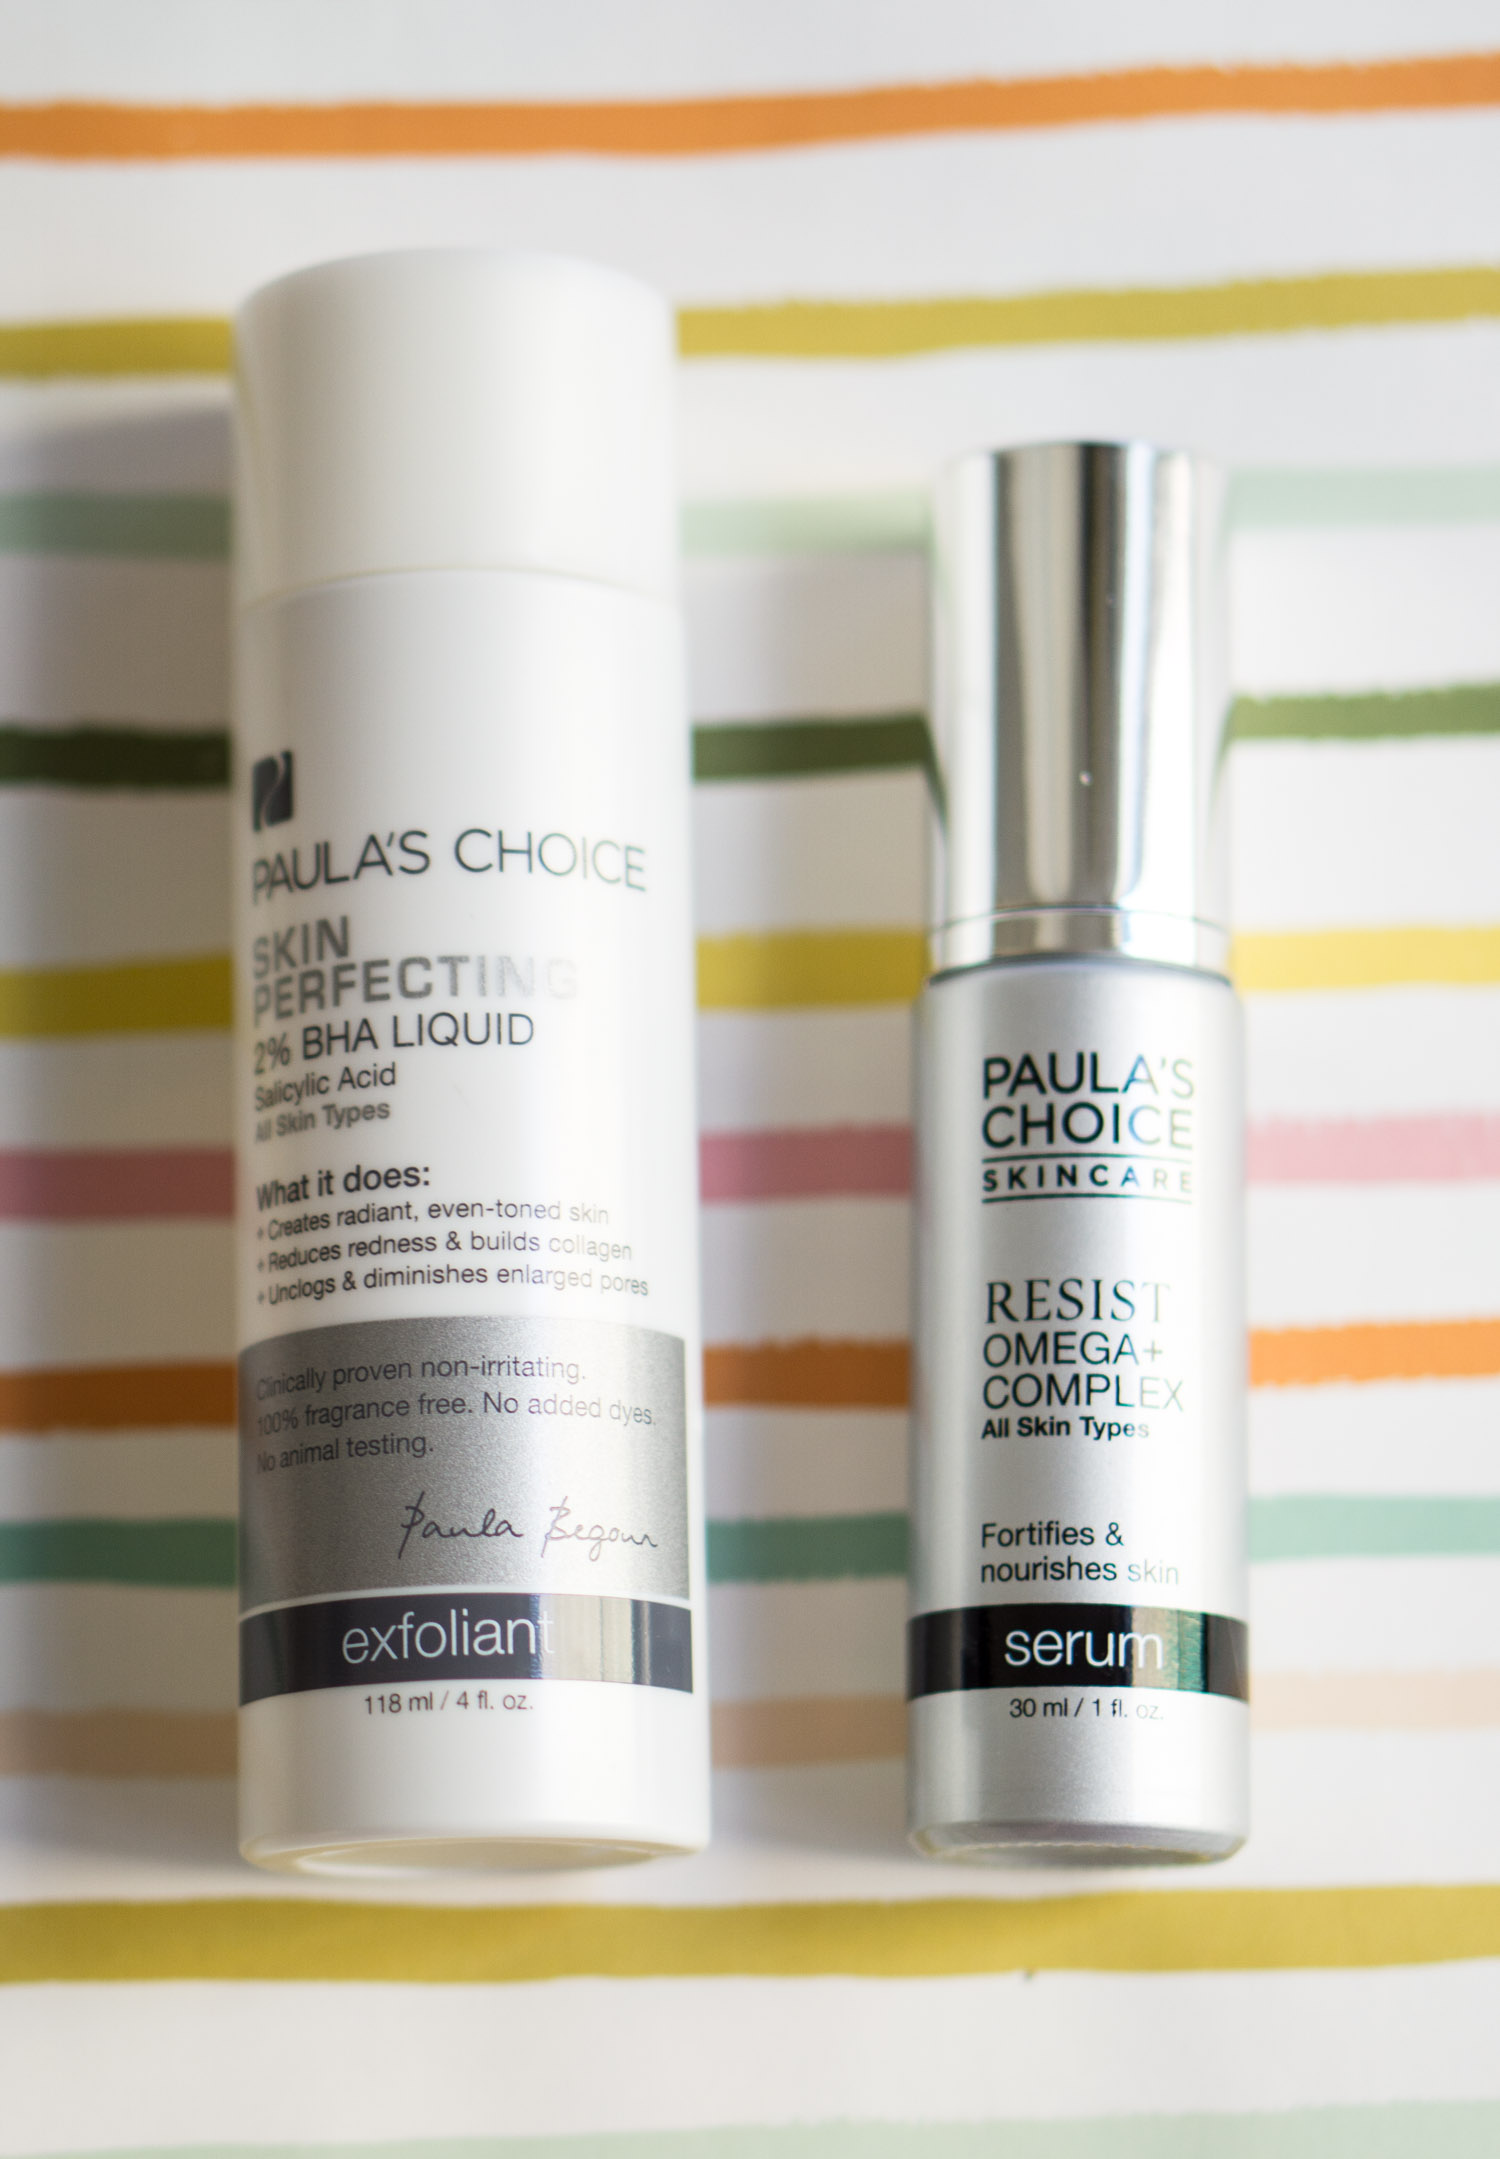 Paula's Choice Skin Perfecting 2% BHA Liquid review